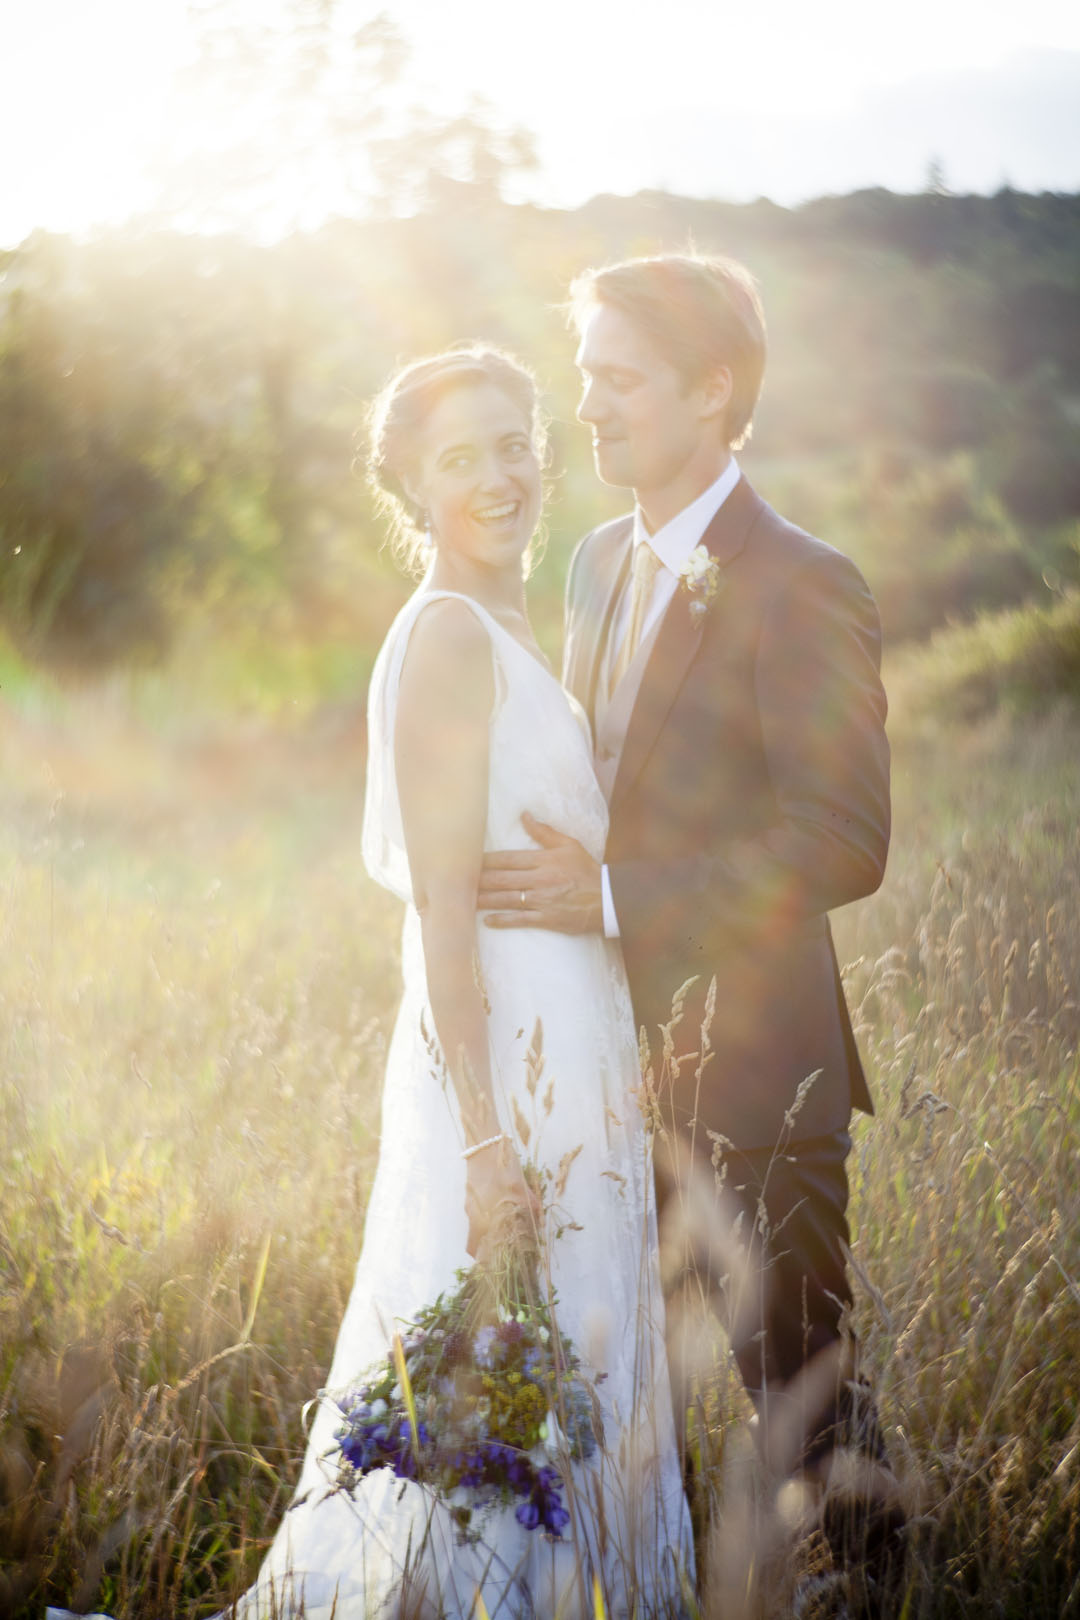 festival style outdoor wedding in a rustic barn and meadow